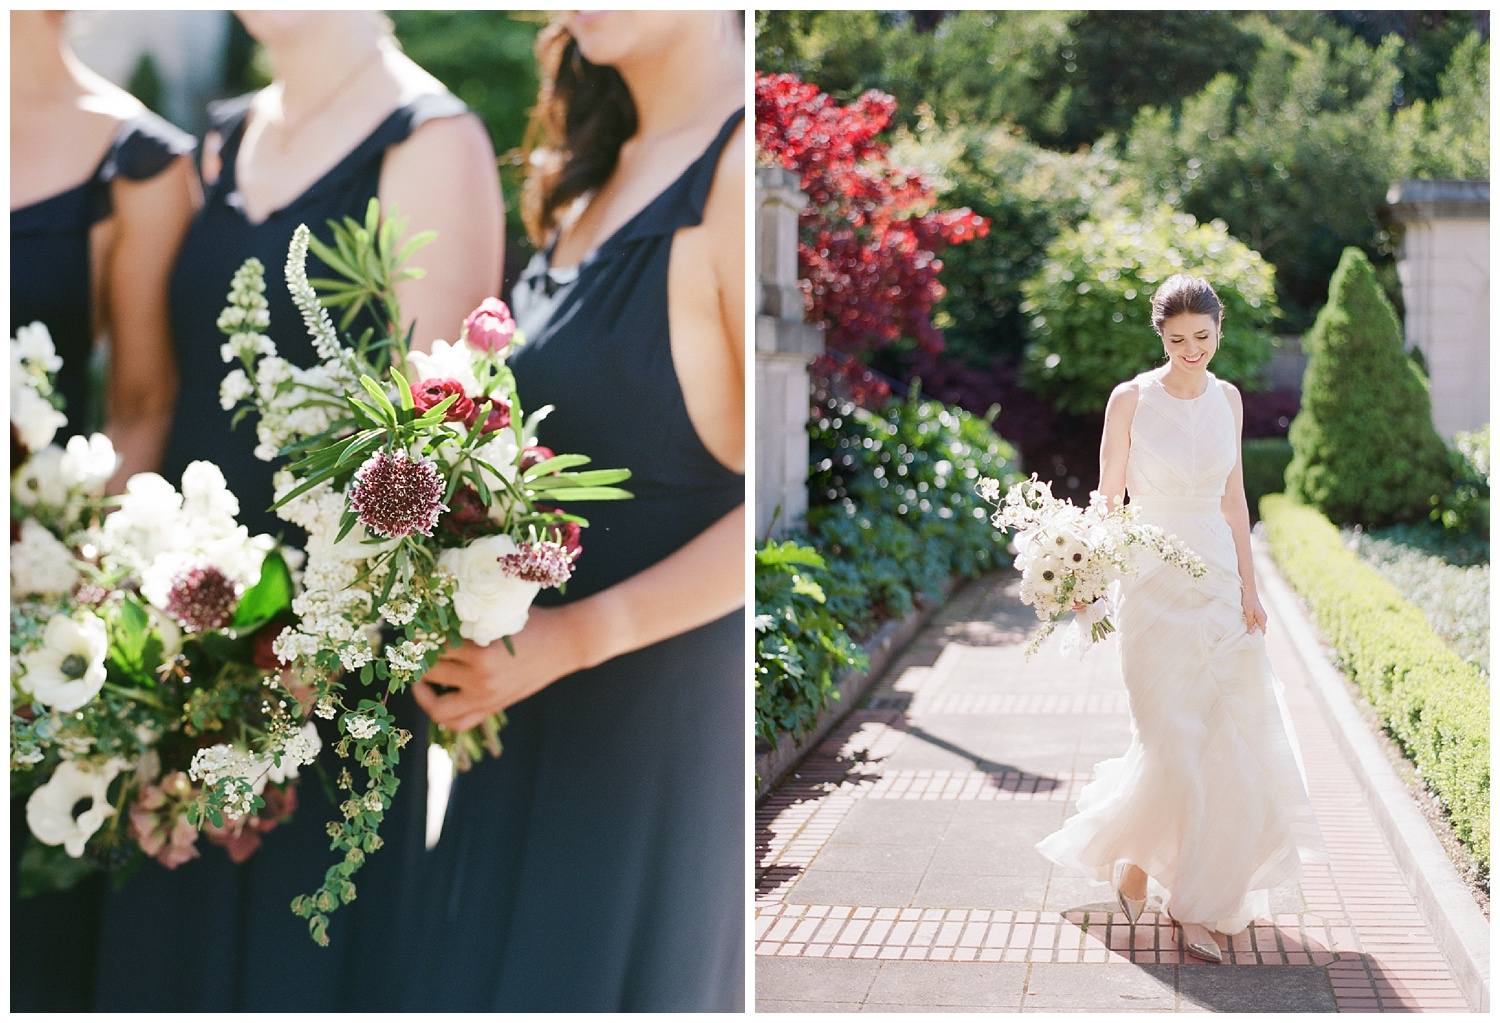 A portrait of the bride and her bridesmaids at Lyon Steps in San Francisco before the wedding; Sylvie Gil Photography